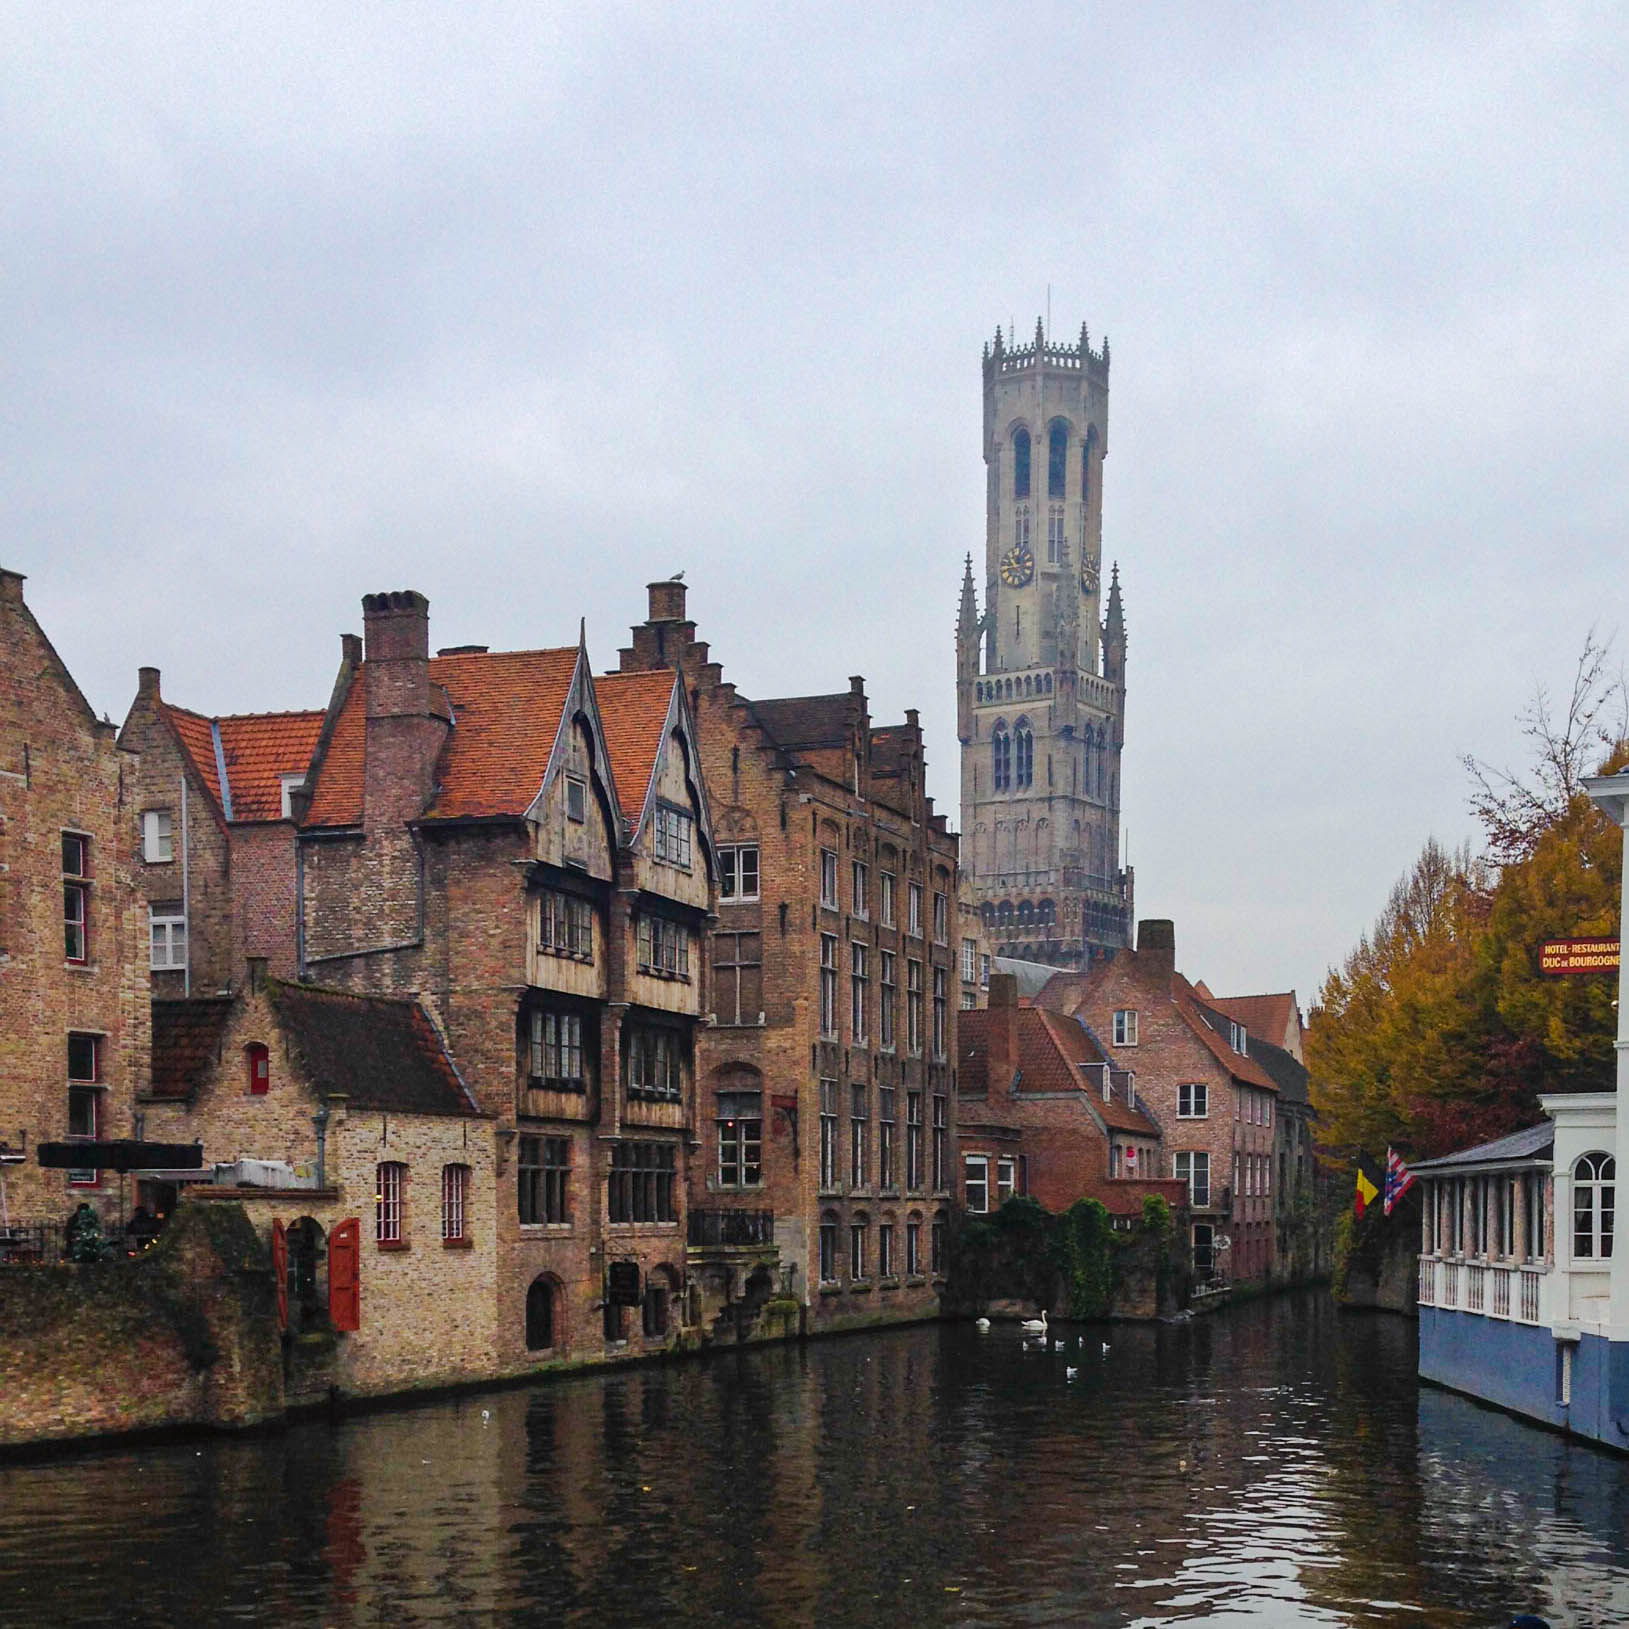 The iconic belfry of Bruges. Photo by David Cenzer.